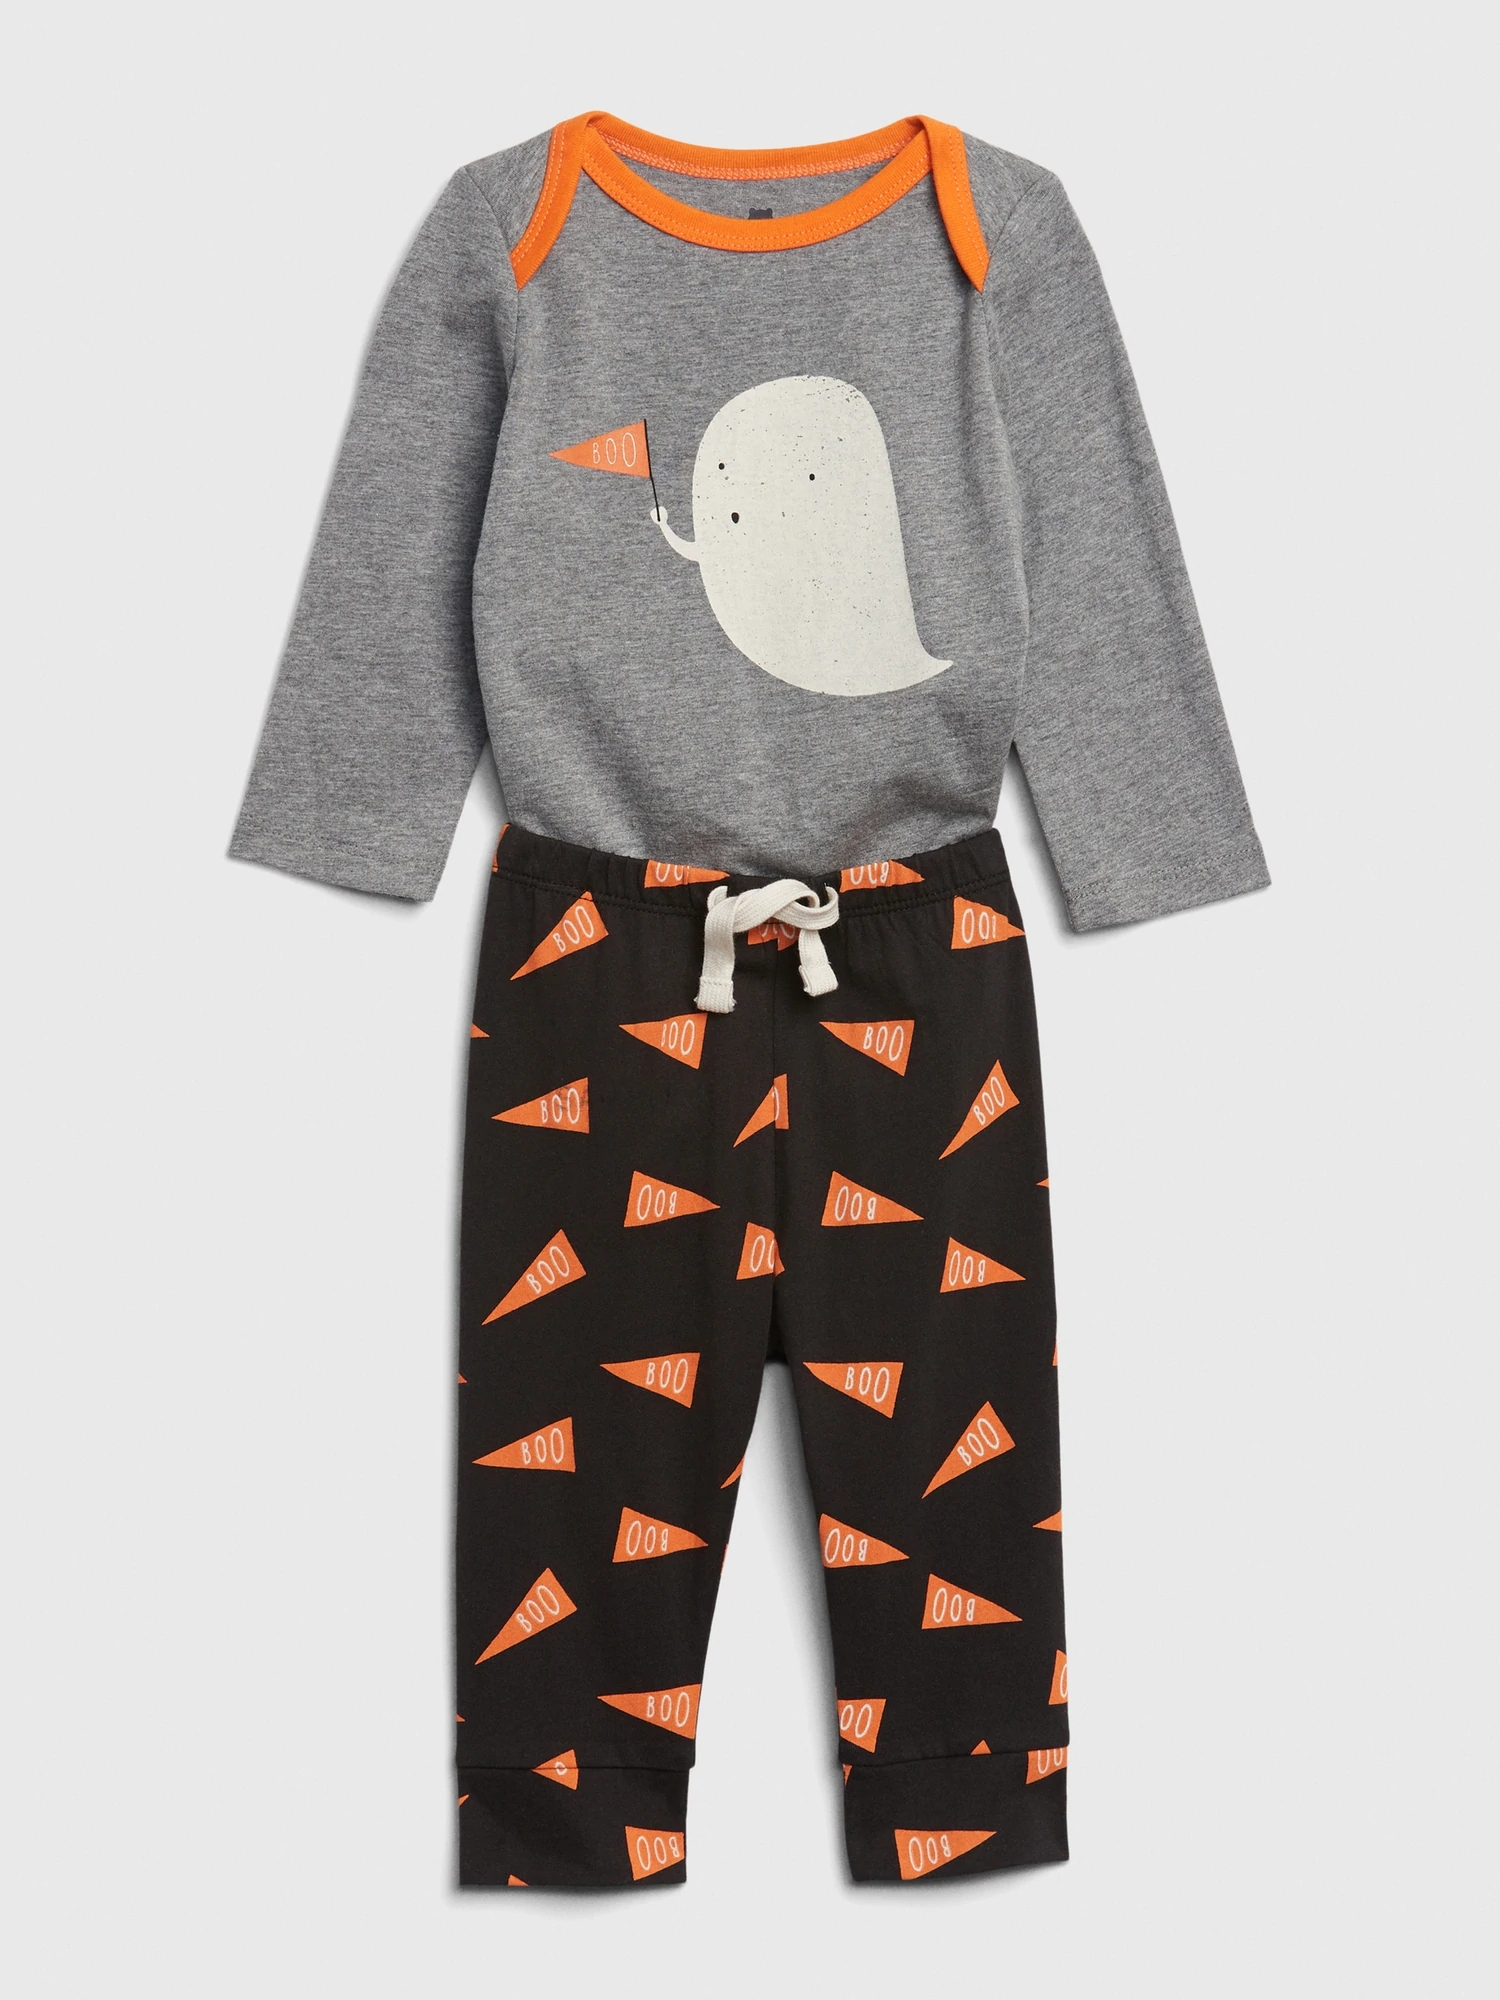 Baby body a tepláky mix and match long sleeve graphic outfit set (3)